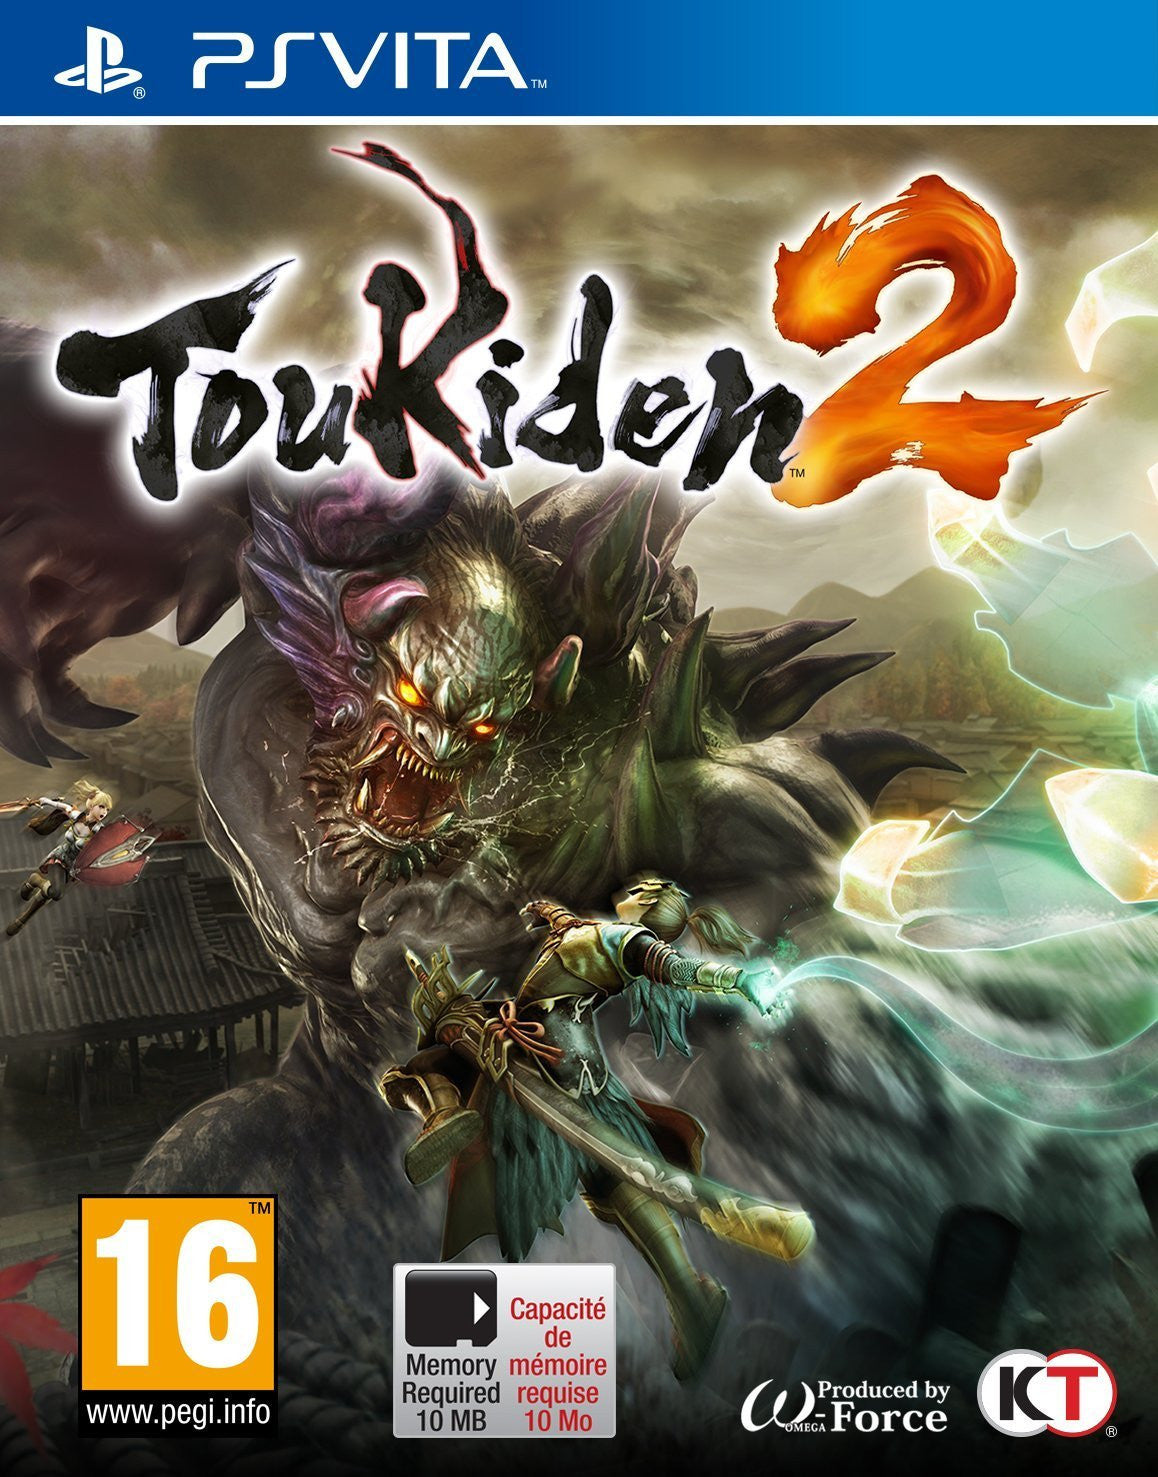 Toukiden 2 - PSVita - Video Games by Koei Tecmo Europe The Chelsea Gamer